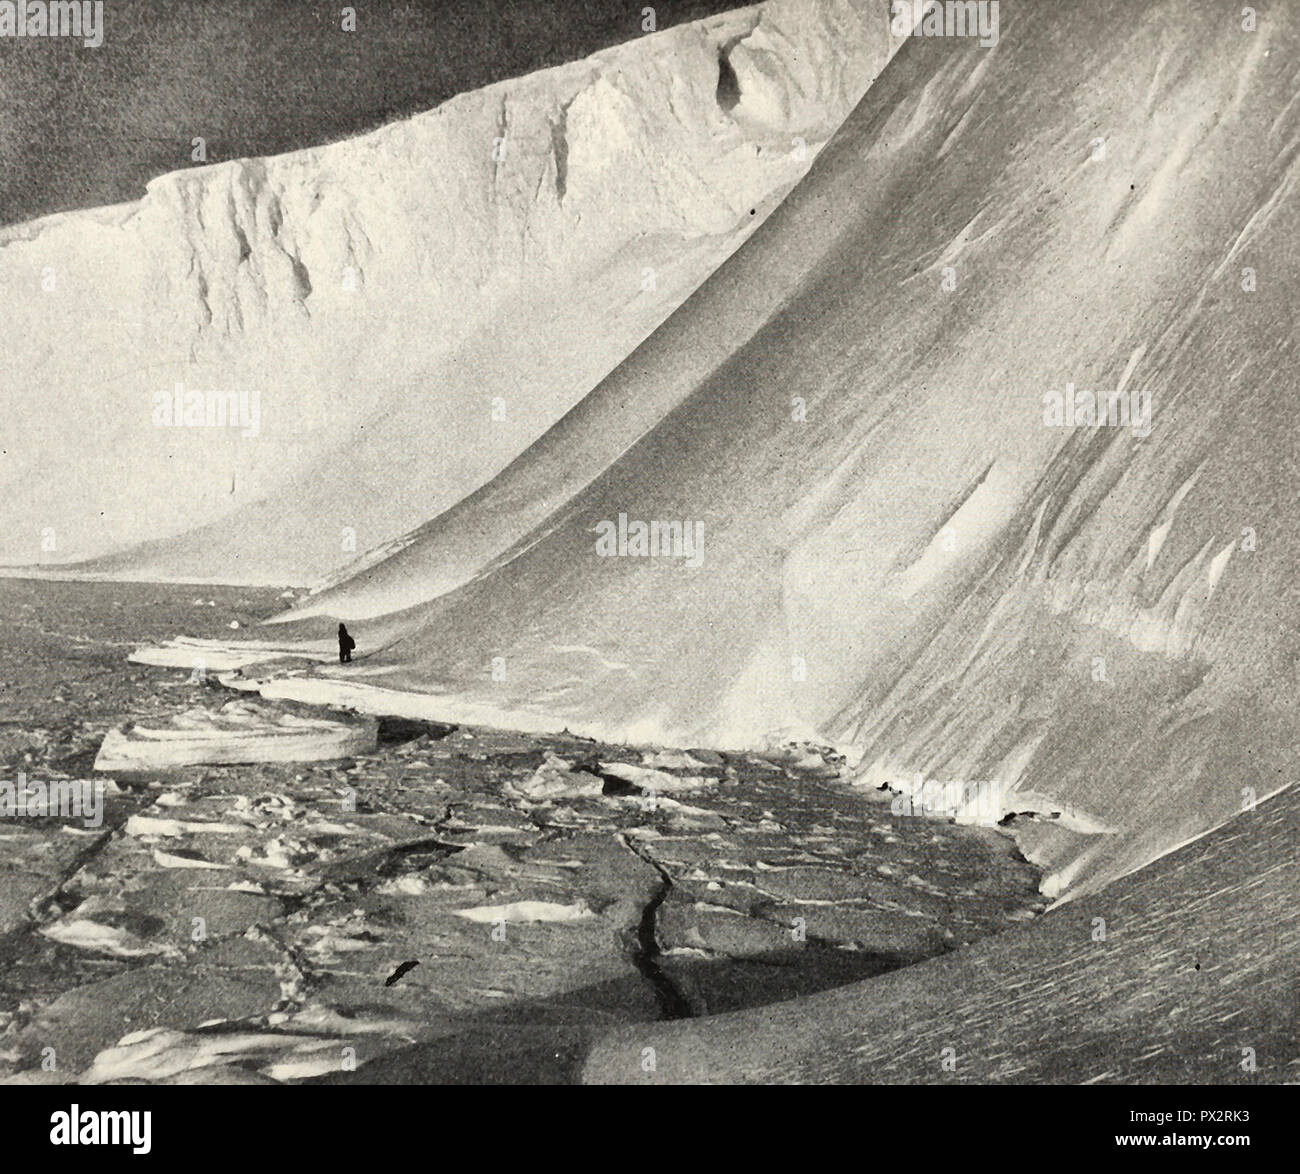 Man filled with awe as he stands beneath mighty ice walls, which tower one hundred and eighty feet above him, Antarctica, circa 1910 - Stock Image